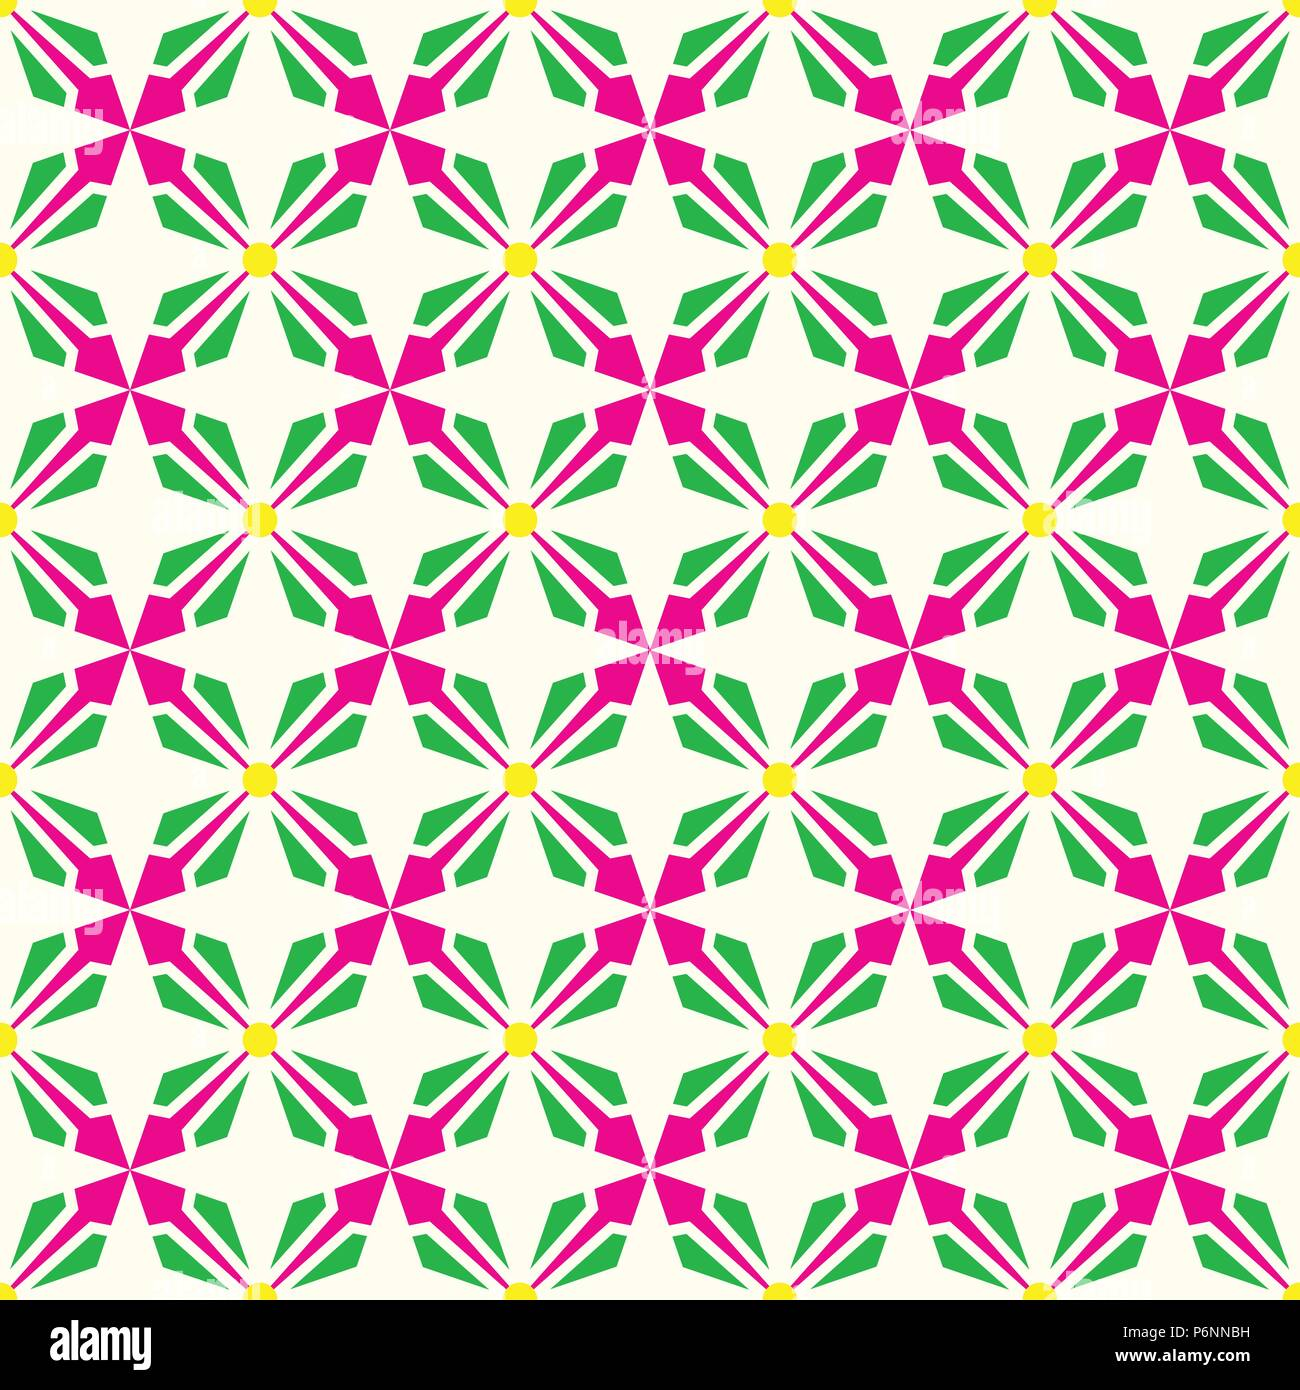 Pink and green abstract arrow and circle in rectangle shape seamless pattern. Modern pattern for graphic or abstract design. - Stock Vector